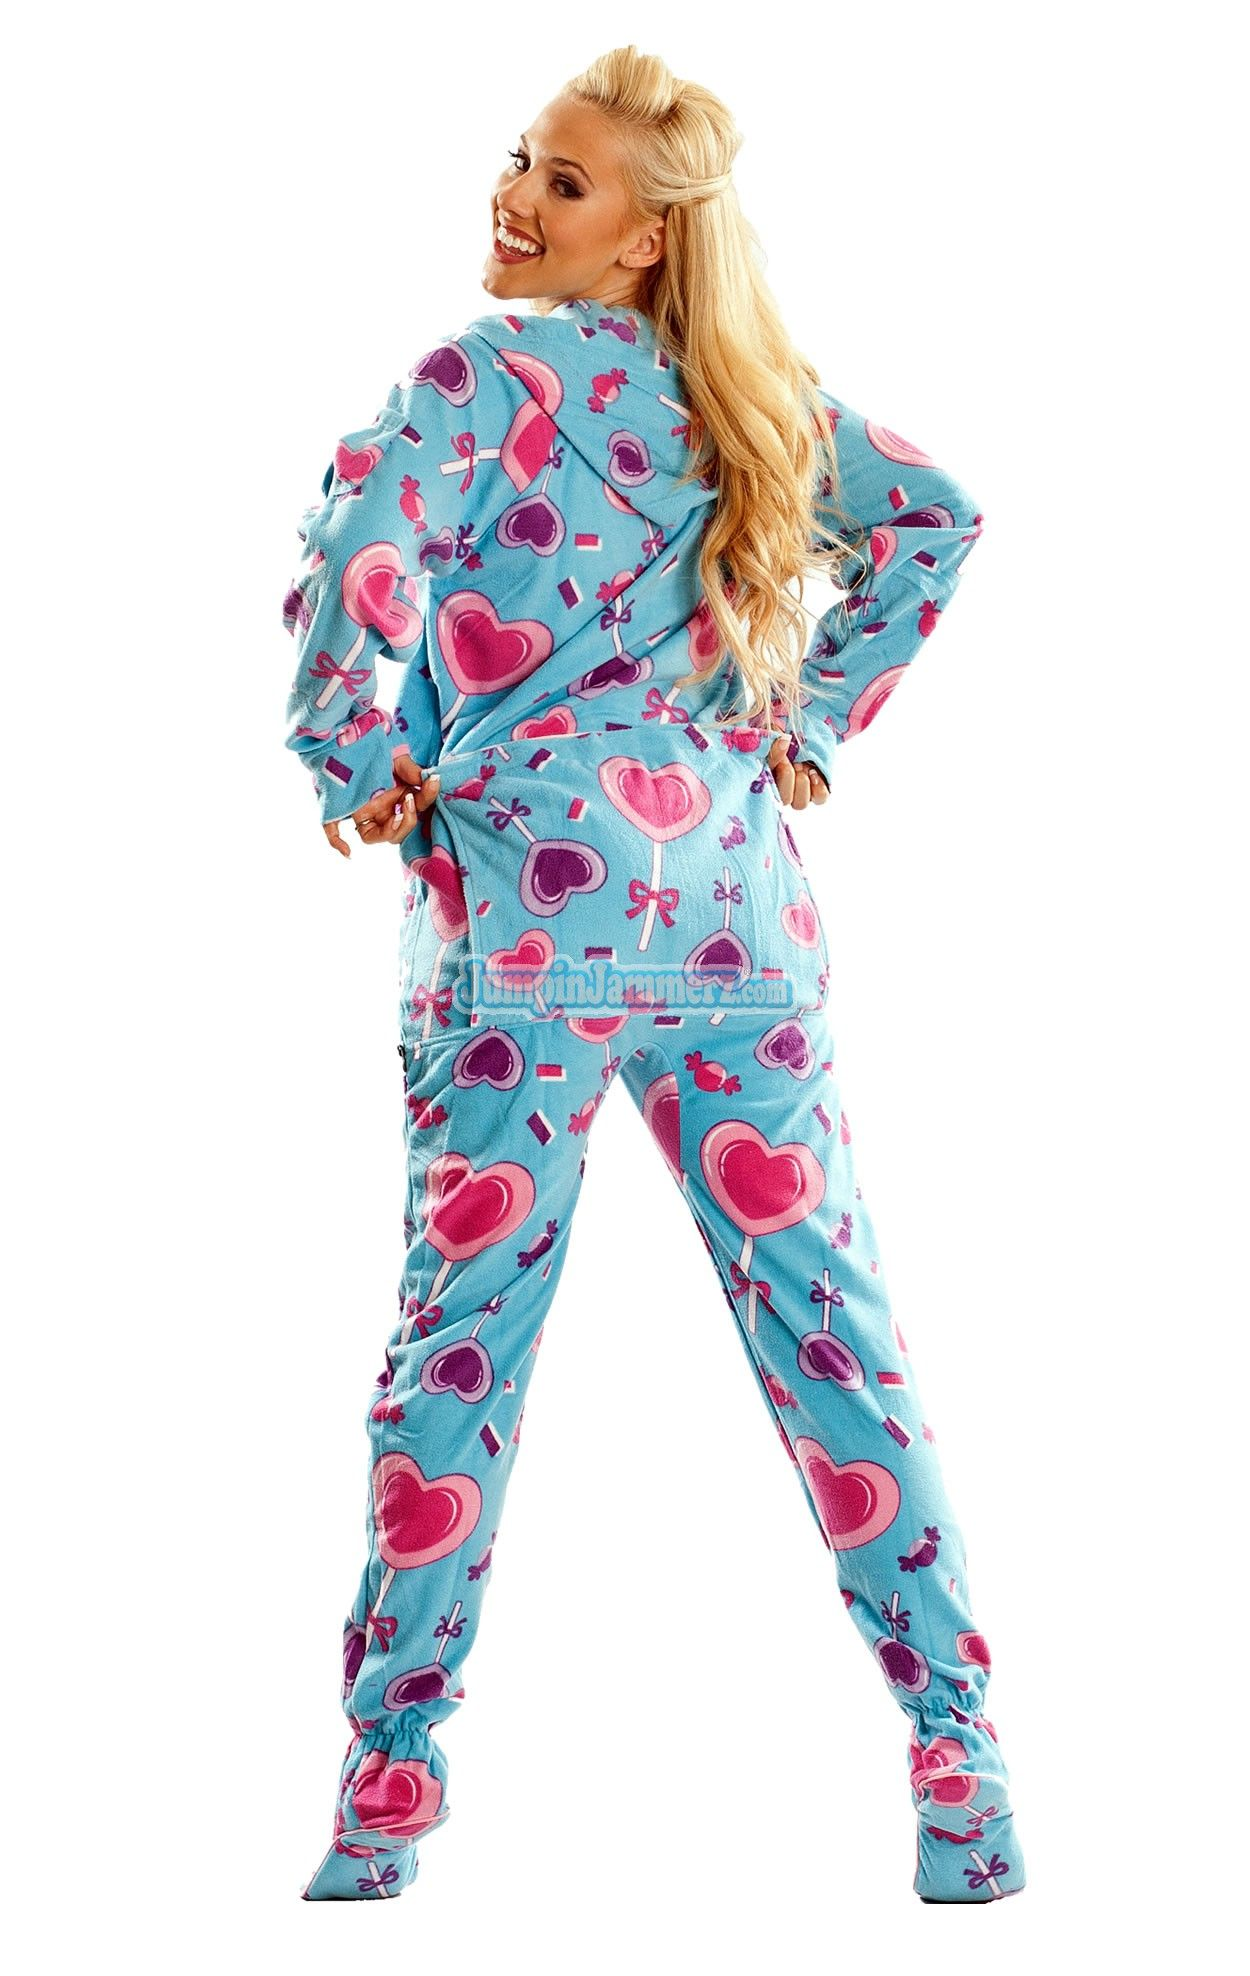 a01dffa9a Frosty Flakes Hooded Footed Pajamas Pajamas Footie PJs